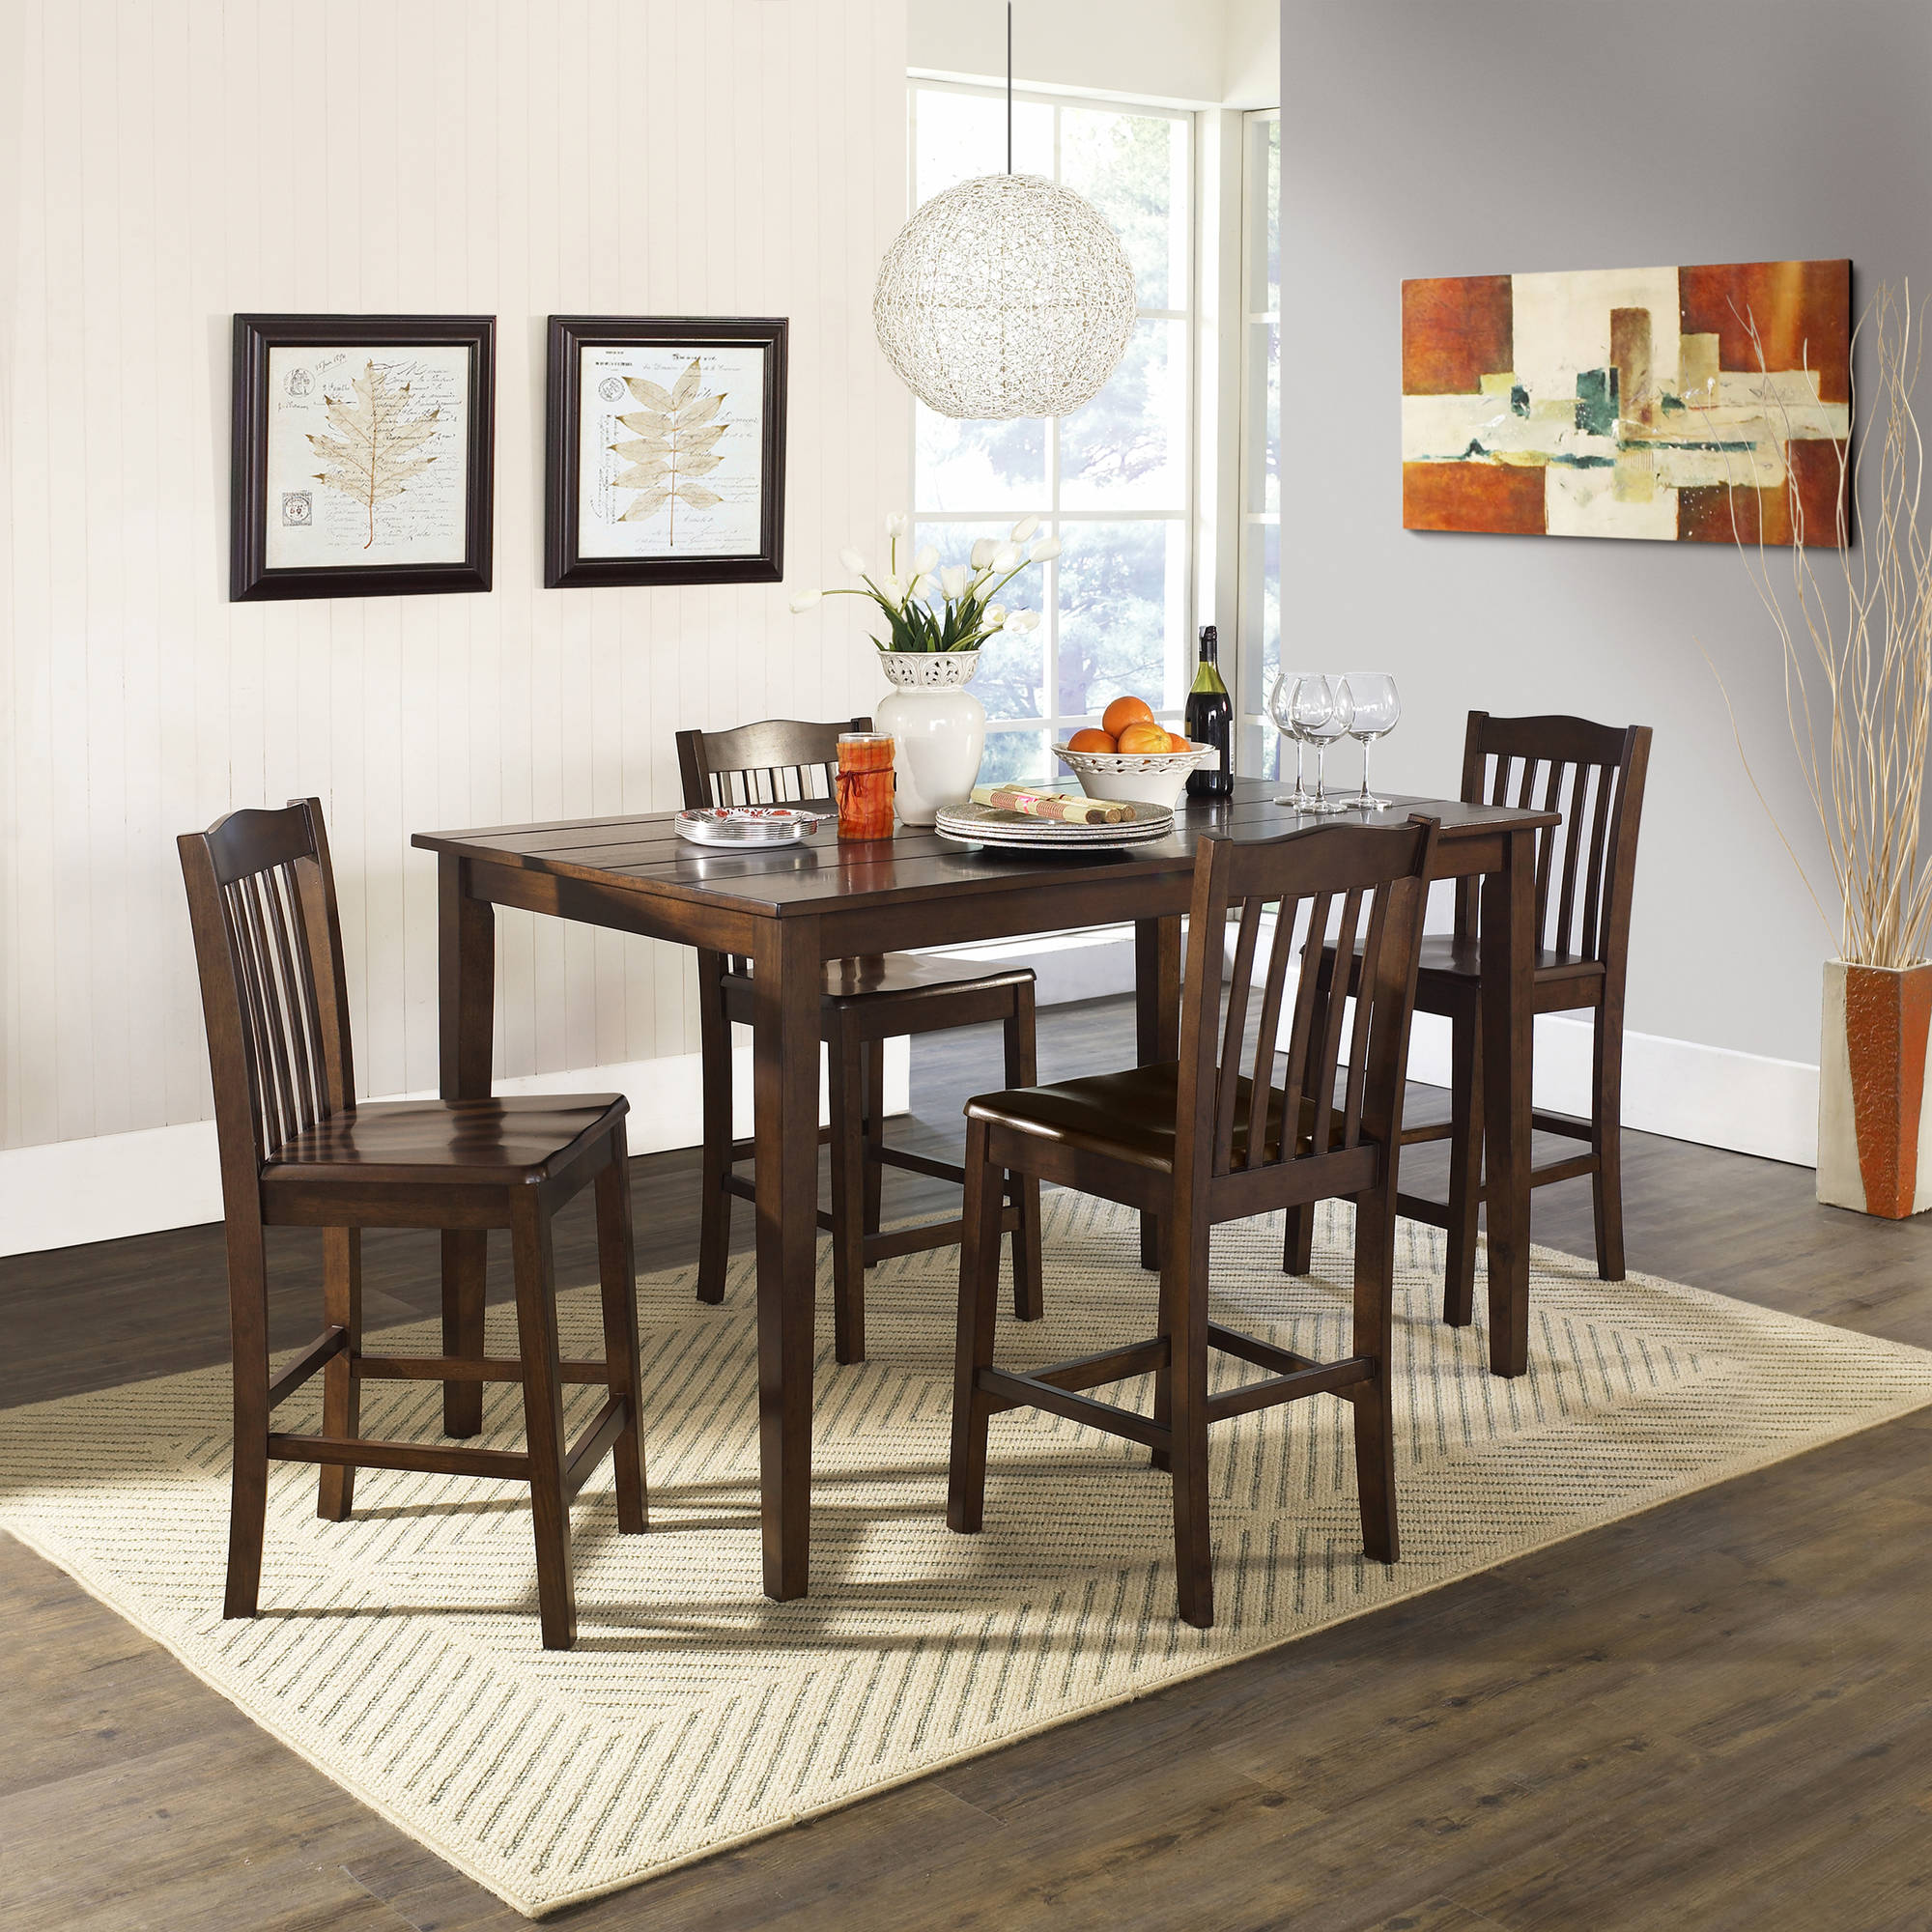 Better Homes and Gardens 5-Piece Counter Height Dining Set, Dark Rustic Mahogany